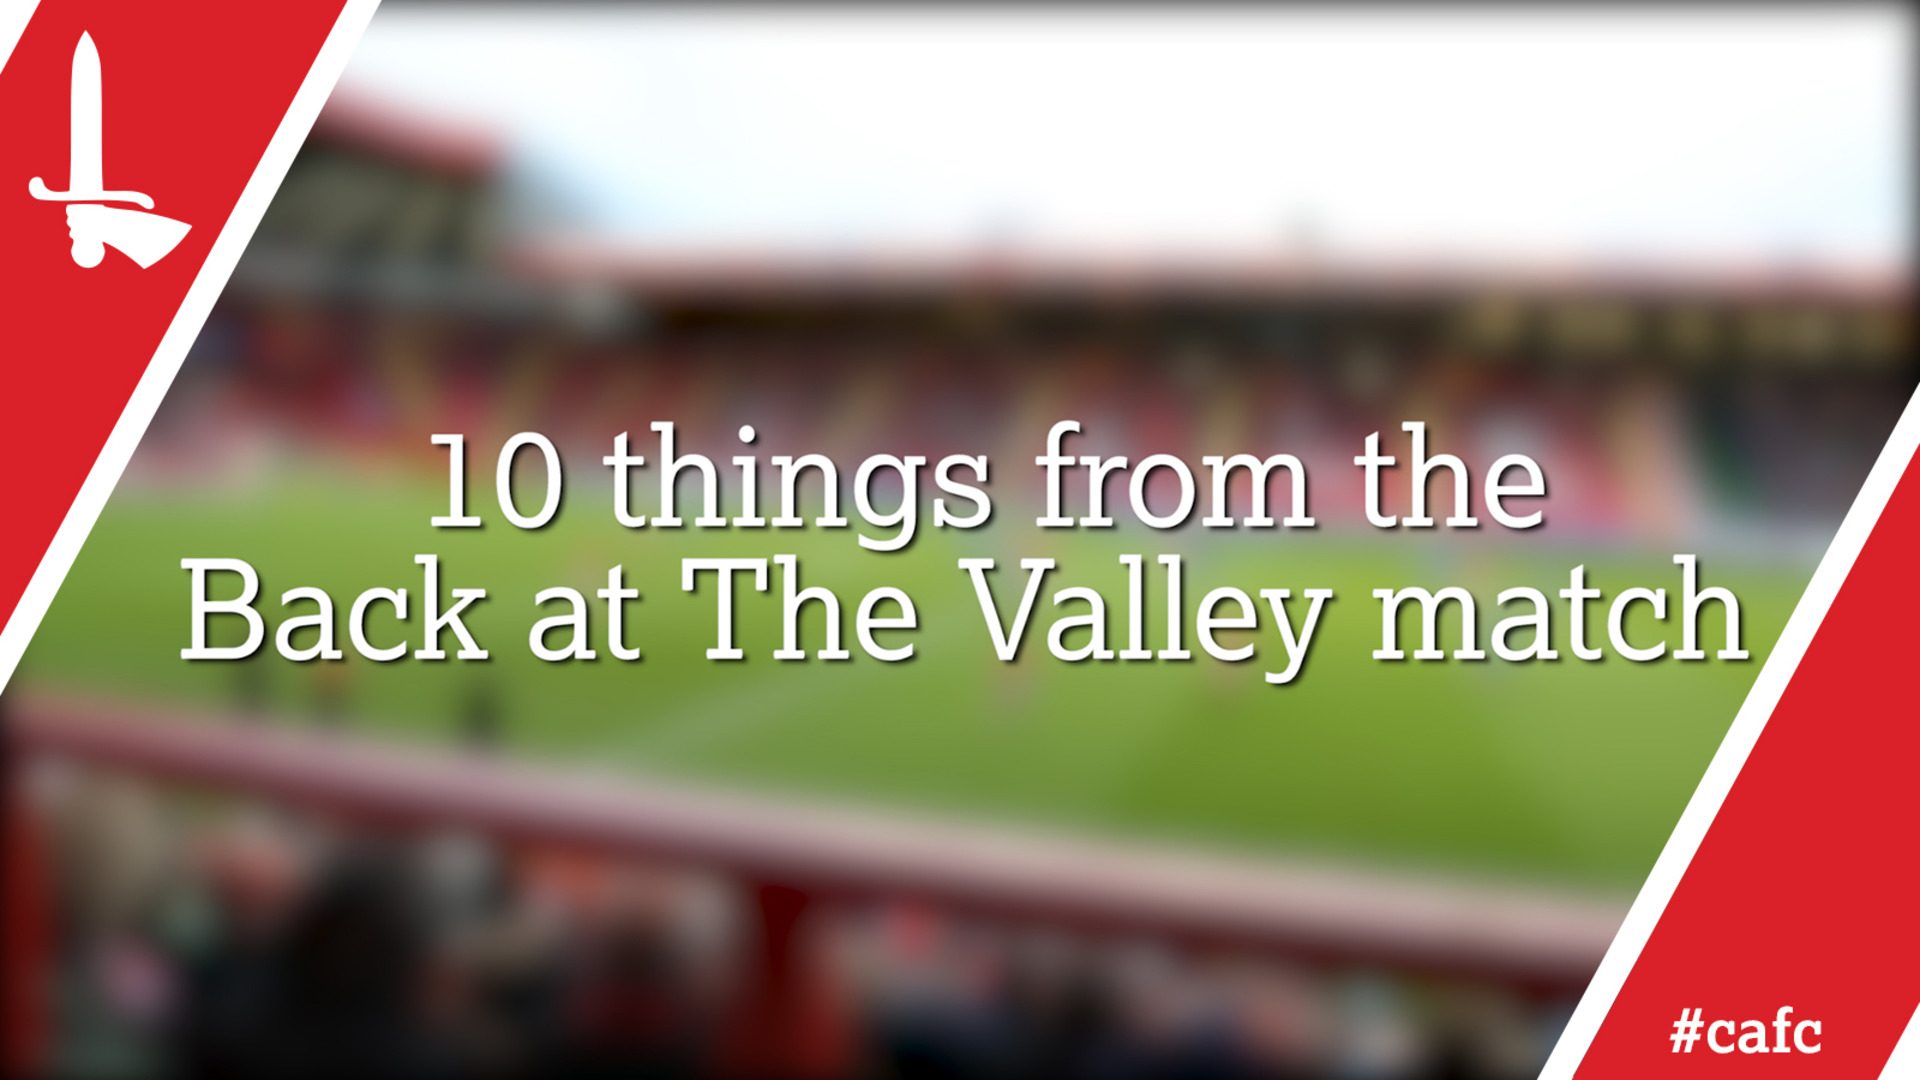 10 things from the Back at The Valley match